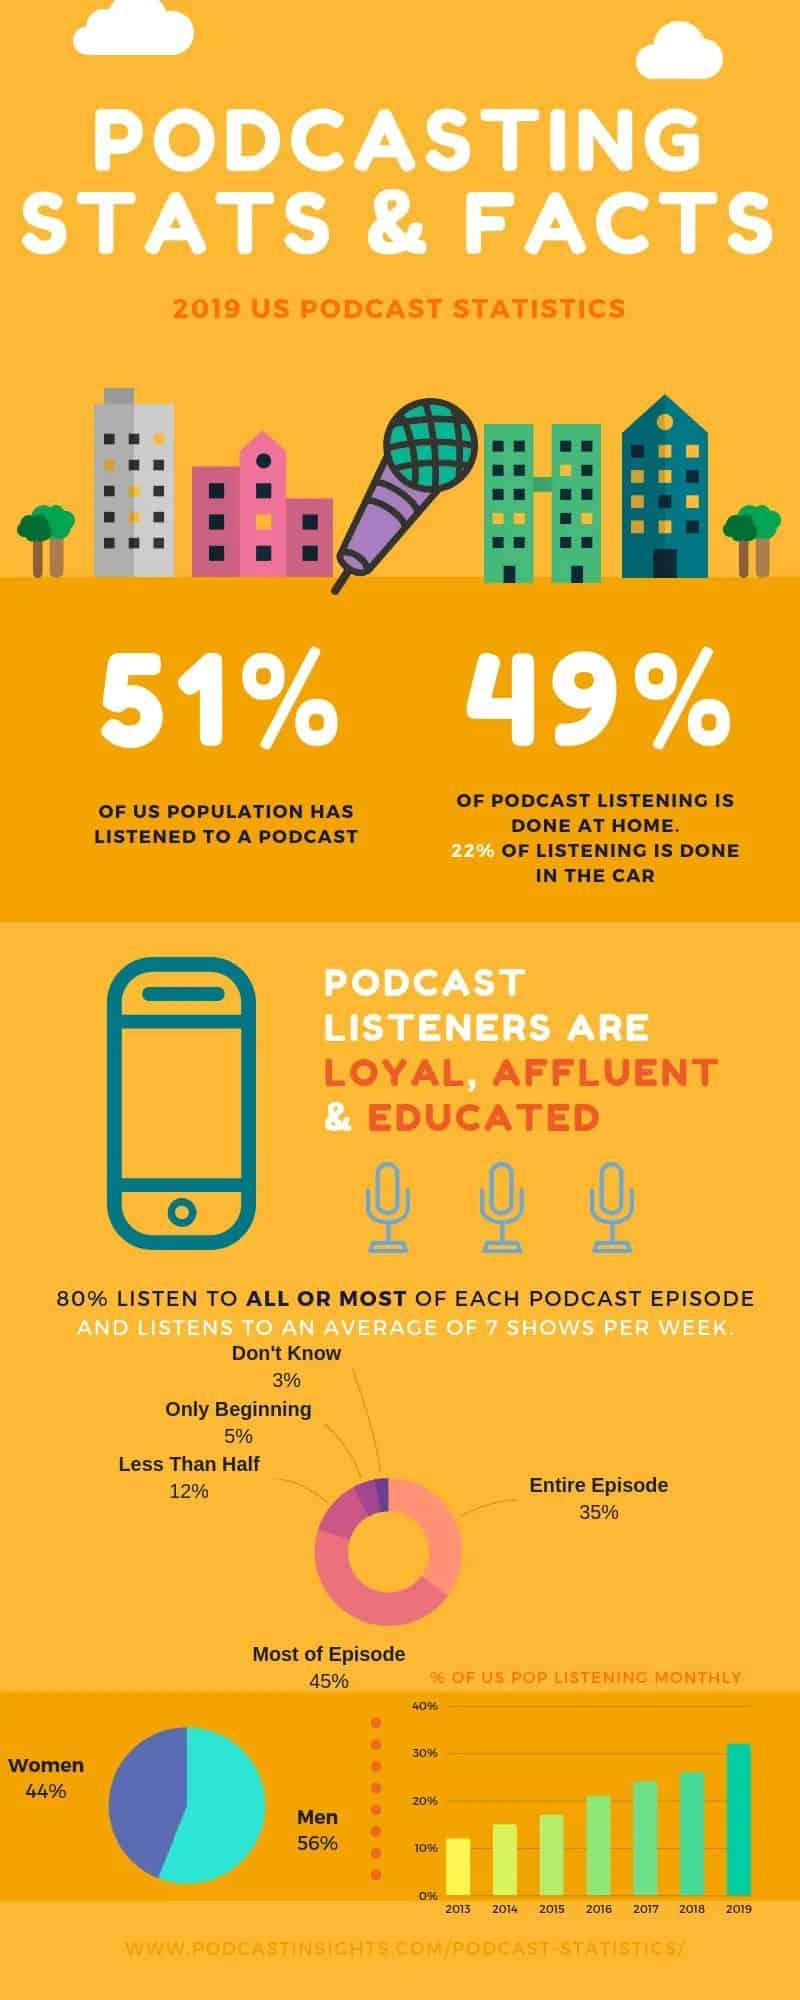 Check out these other important numbers and statistics around podcasting in the US, in this great infographic!